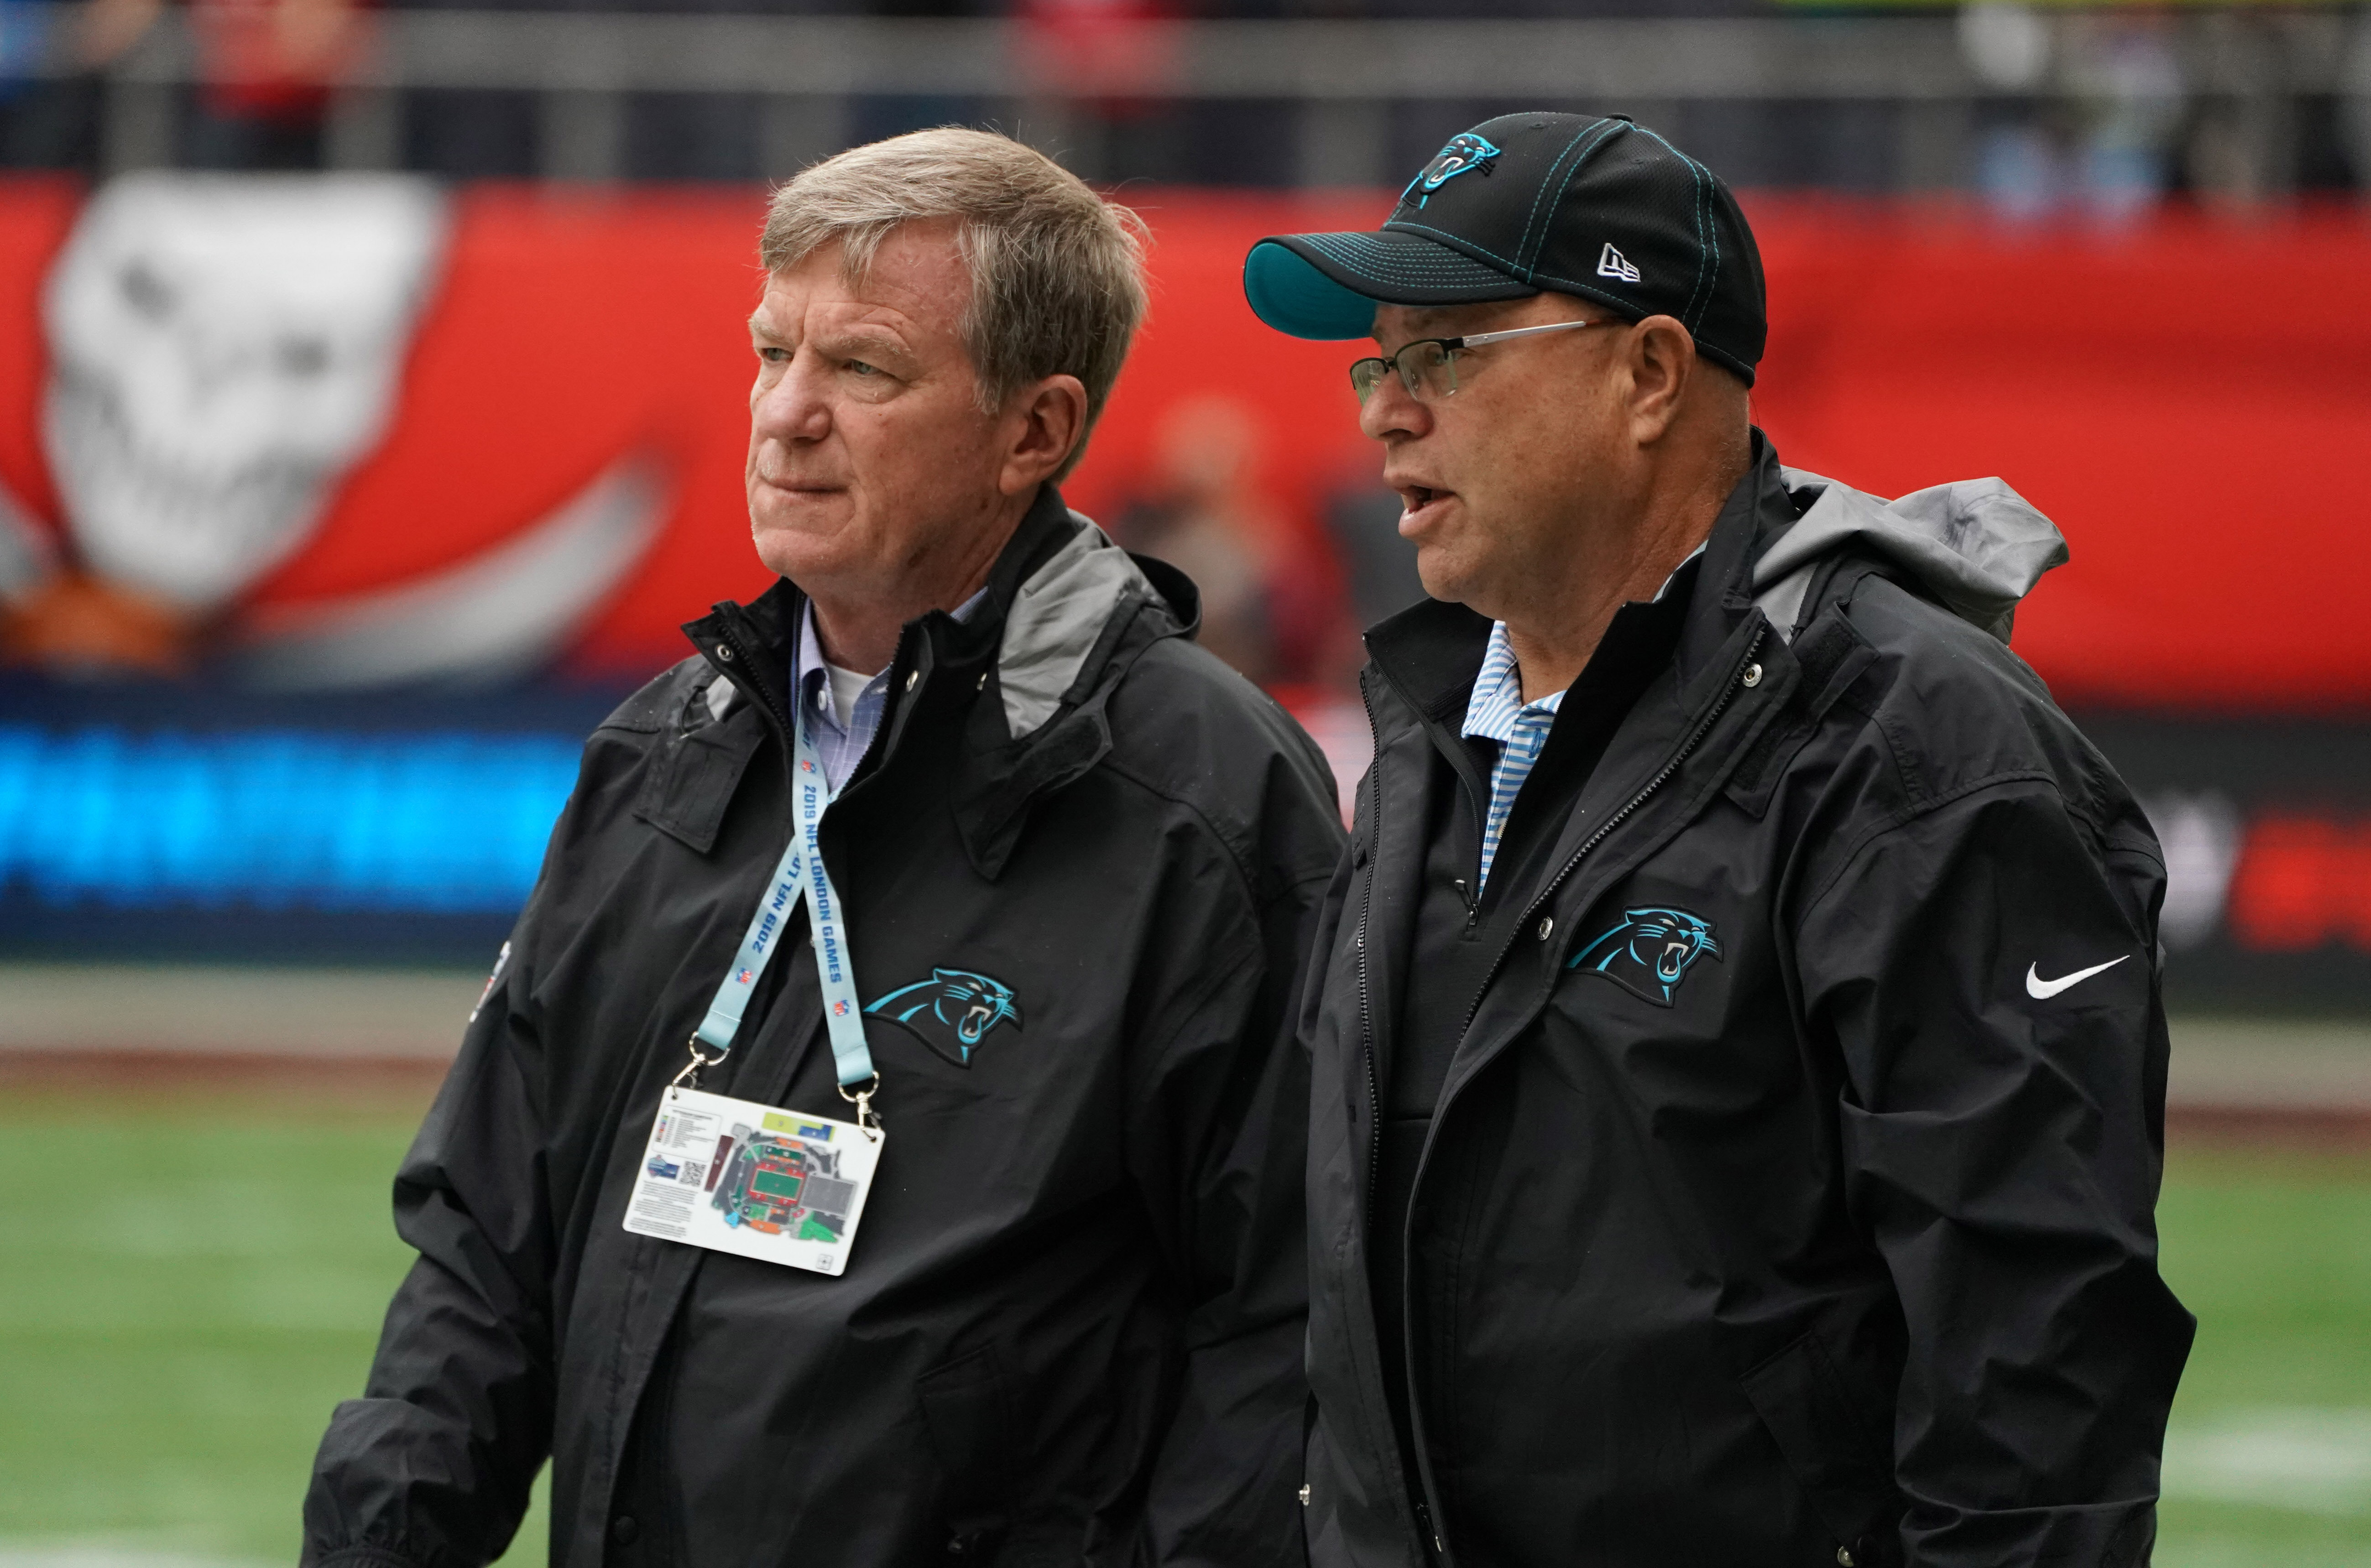 Panthers Settle in at 7th for 2020 NFL Draft